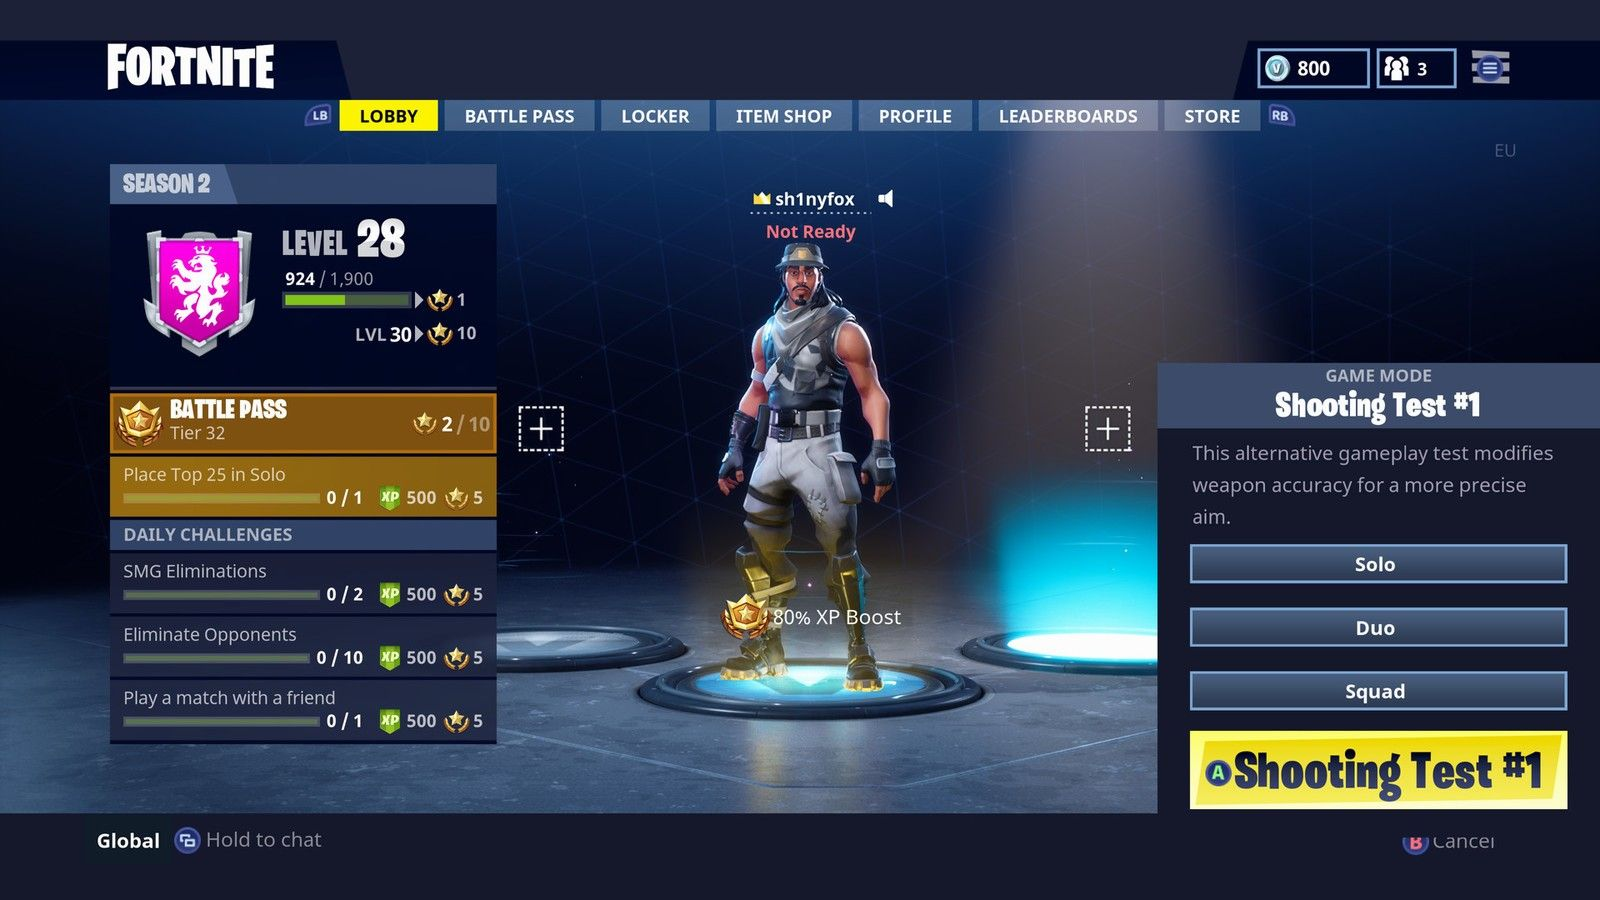 Fortnite Lobby Games Hub Inspo Photo Booth Desktop Screenshot